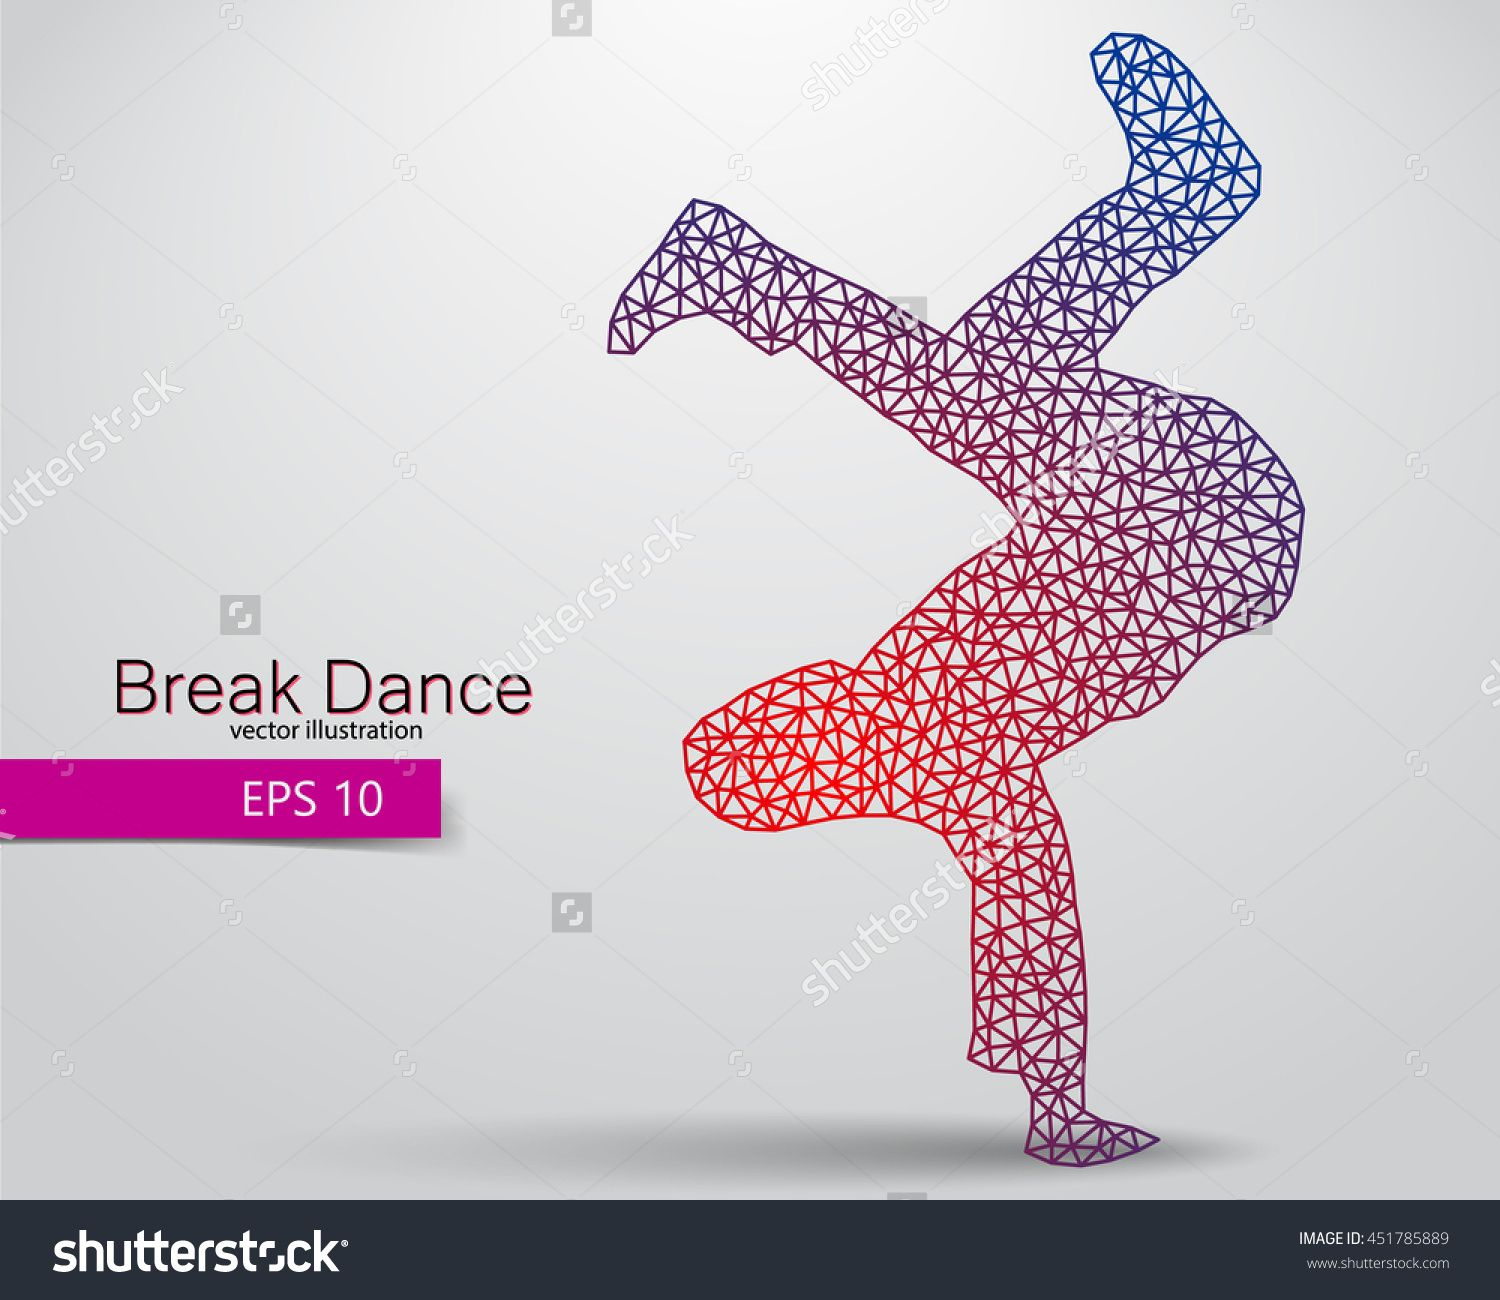 Silhouette of a break dancer from triangles. Background and text on a separate layer, color can be changed in one click. Break dance